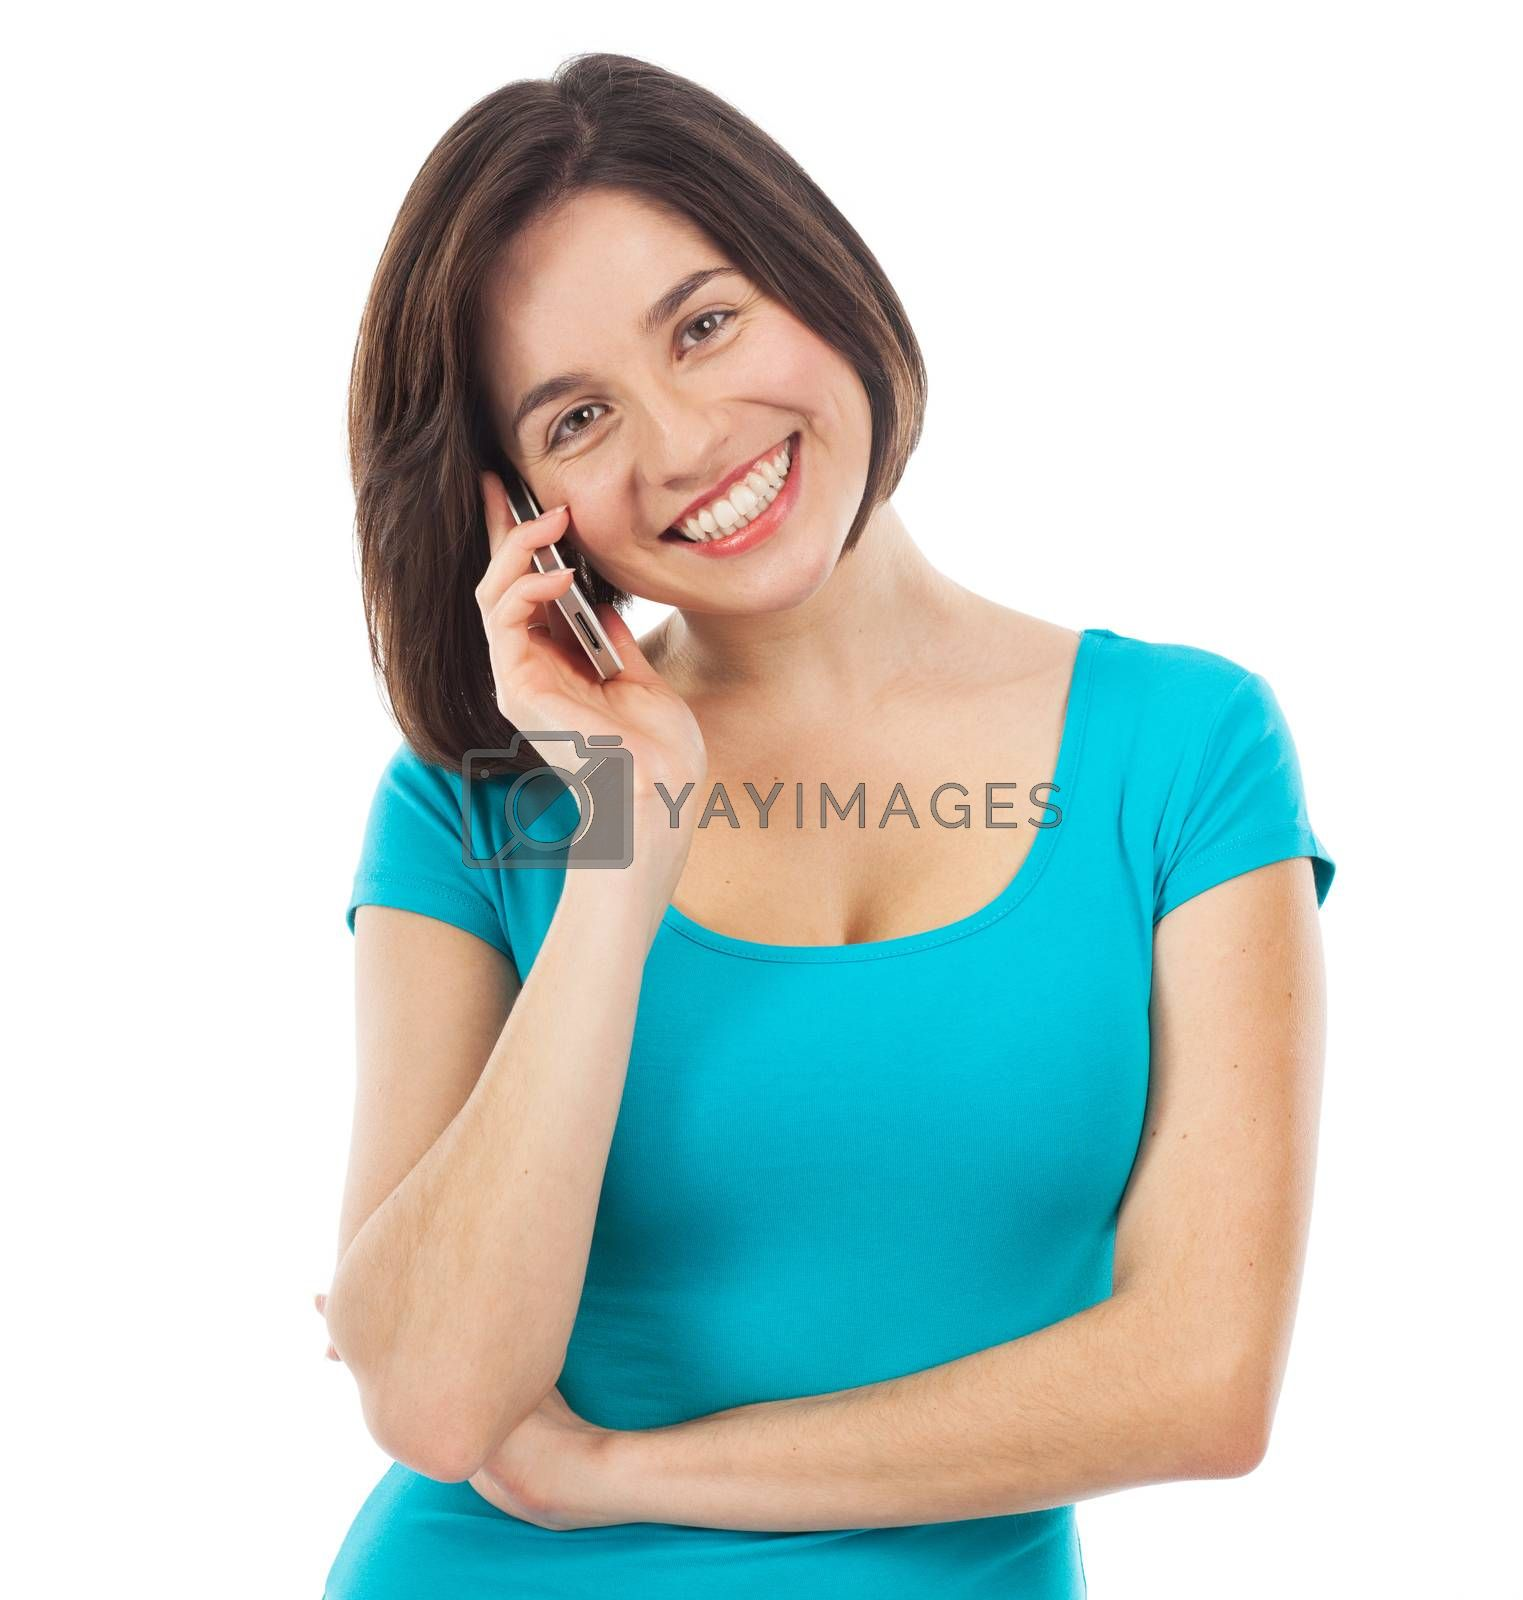 Pretty woman on the phone, isolated on white